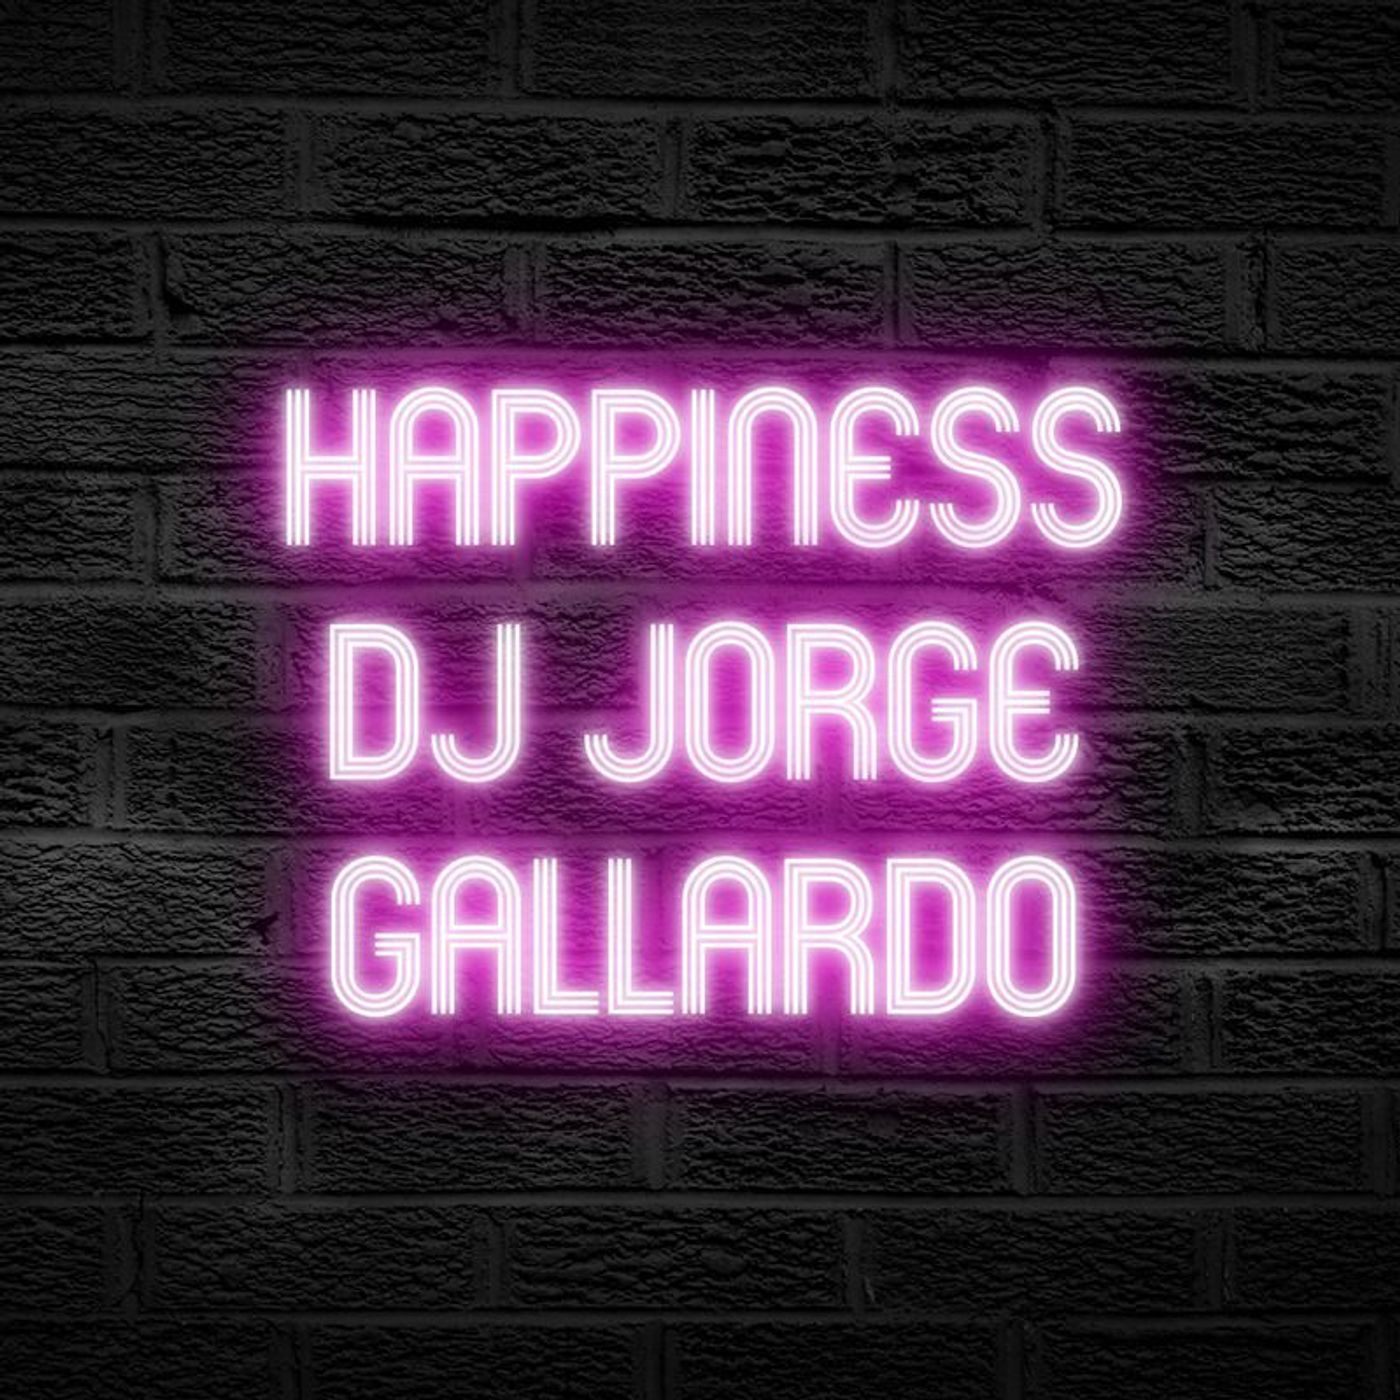 Happiness (Club Mix)